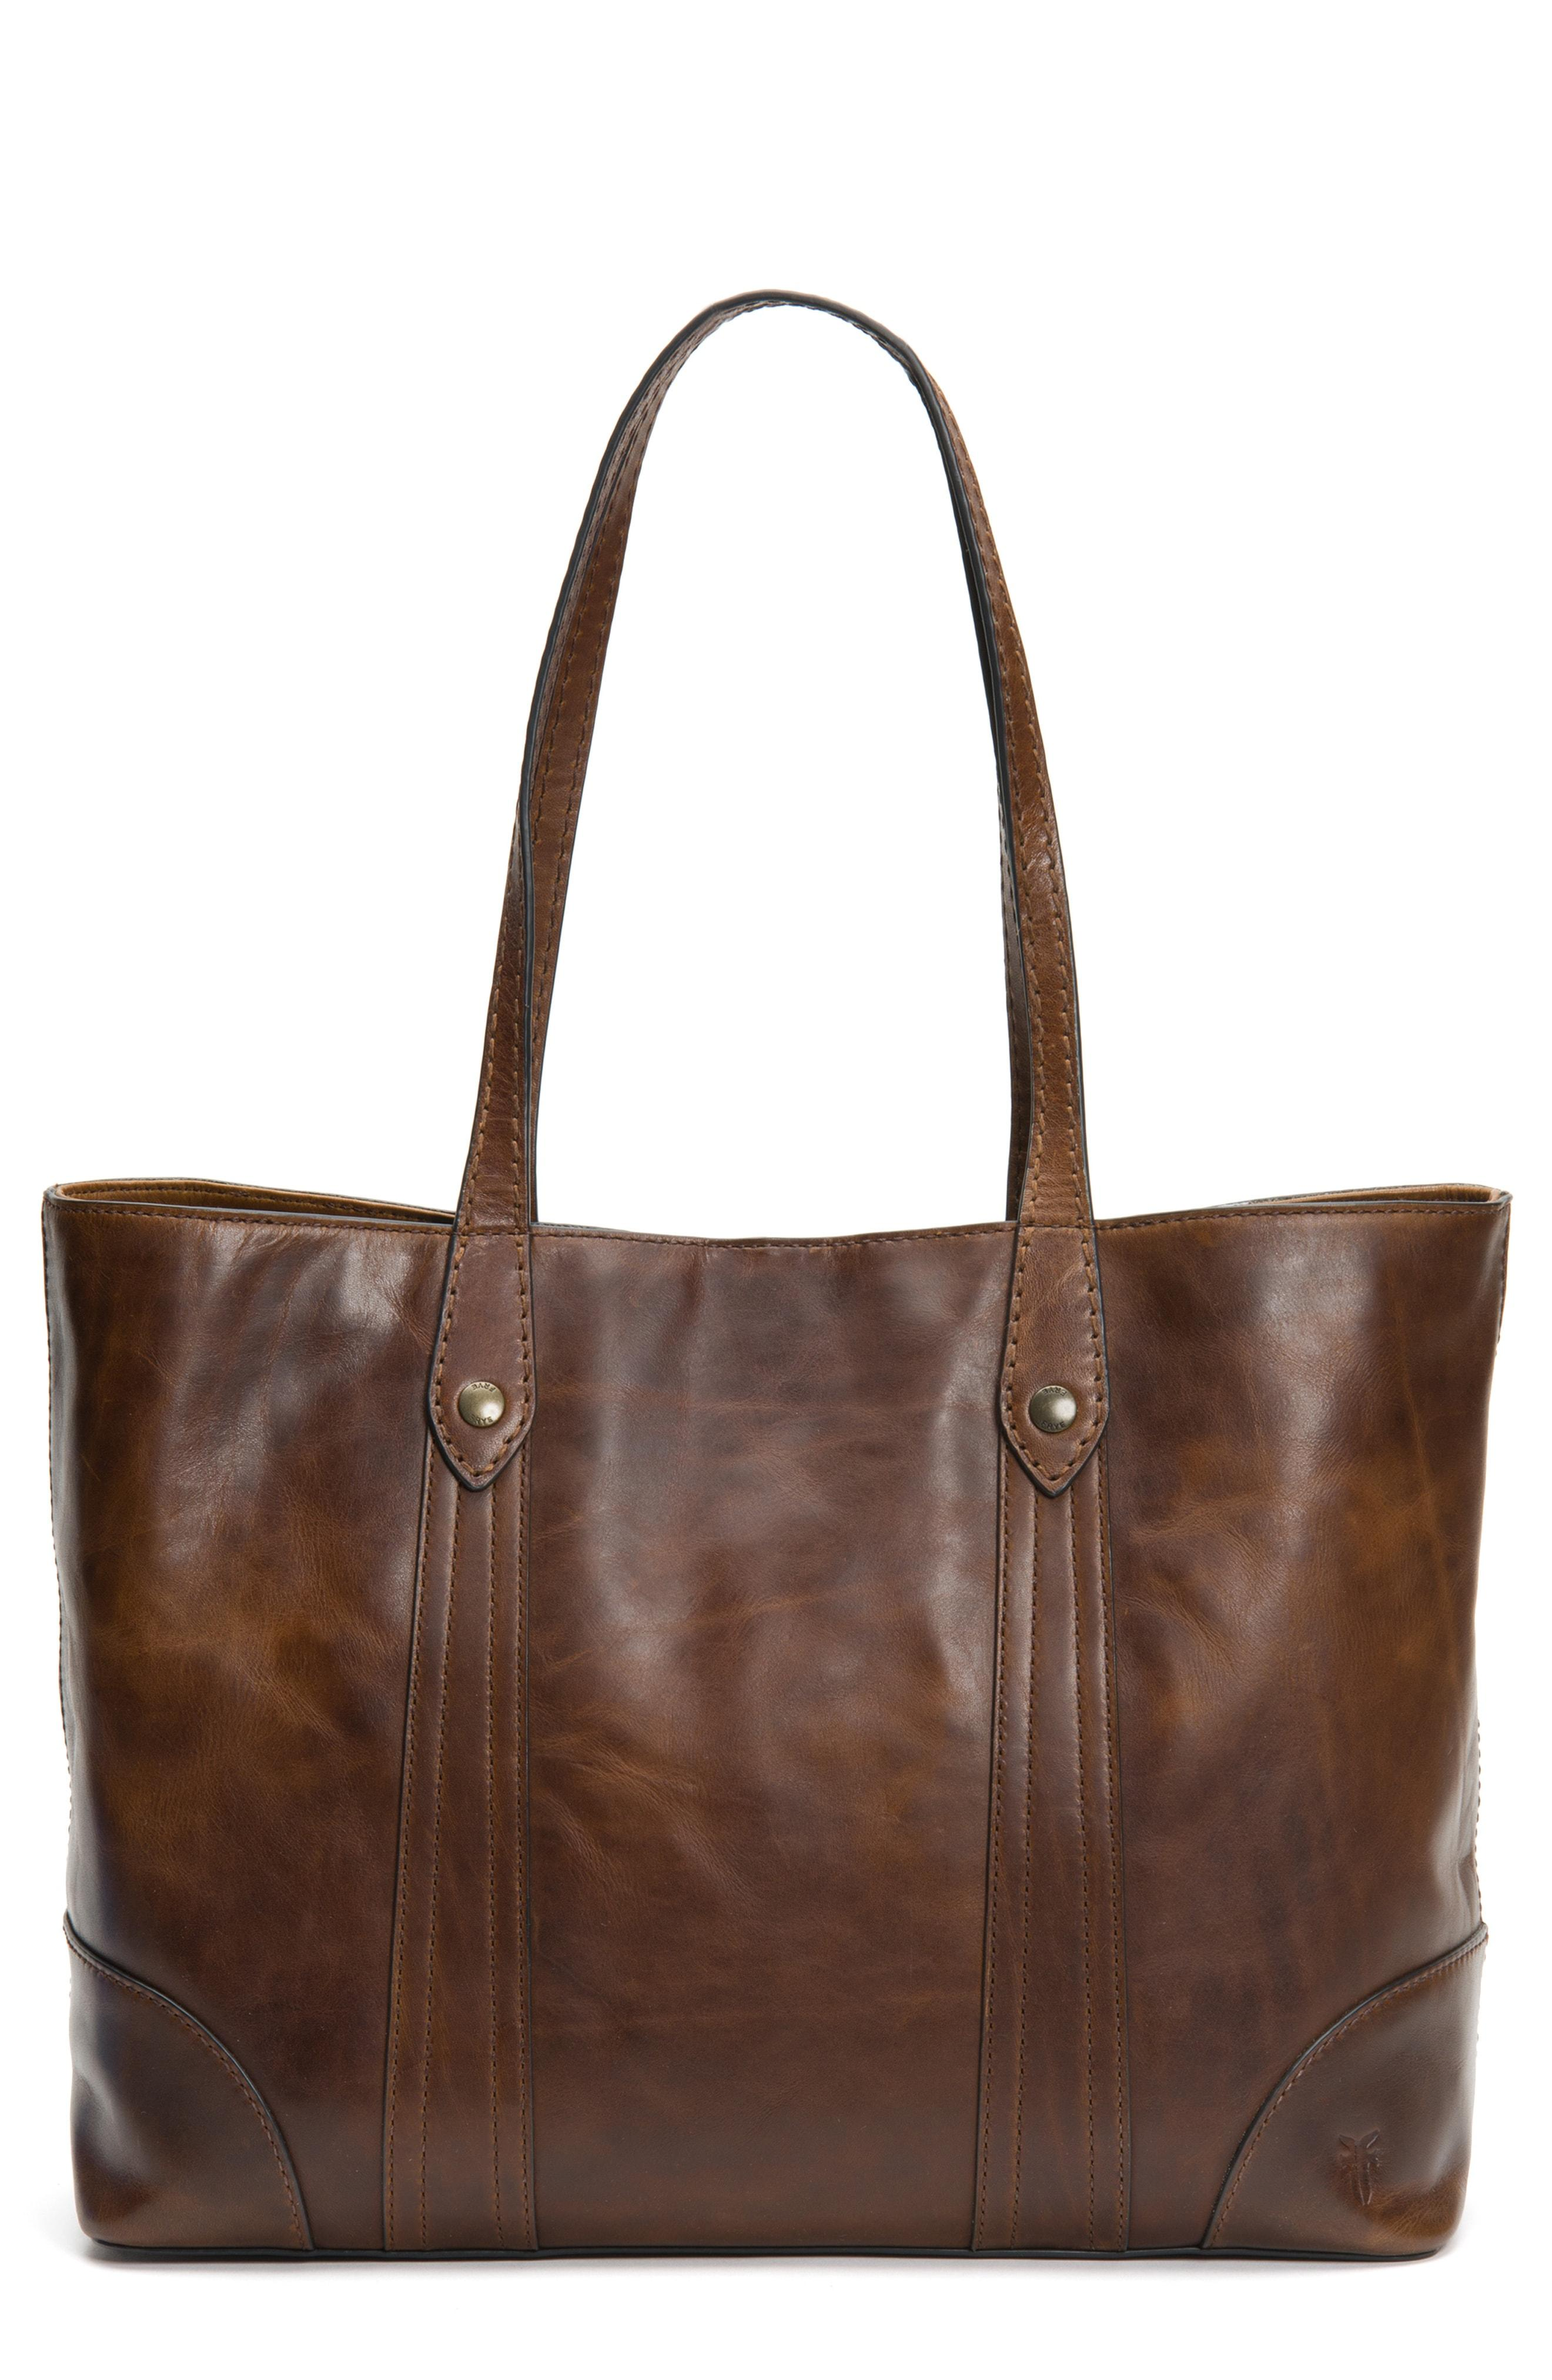 04970584ed92 Lyst - Frye Melissa Leather Shopper in Brown - Save 50%